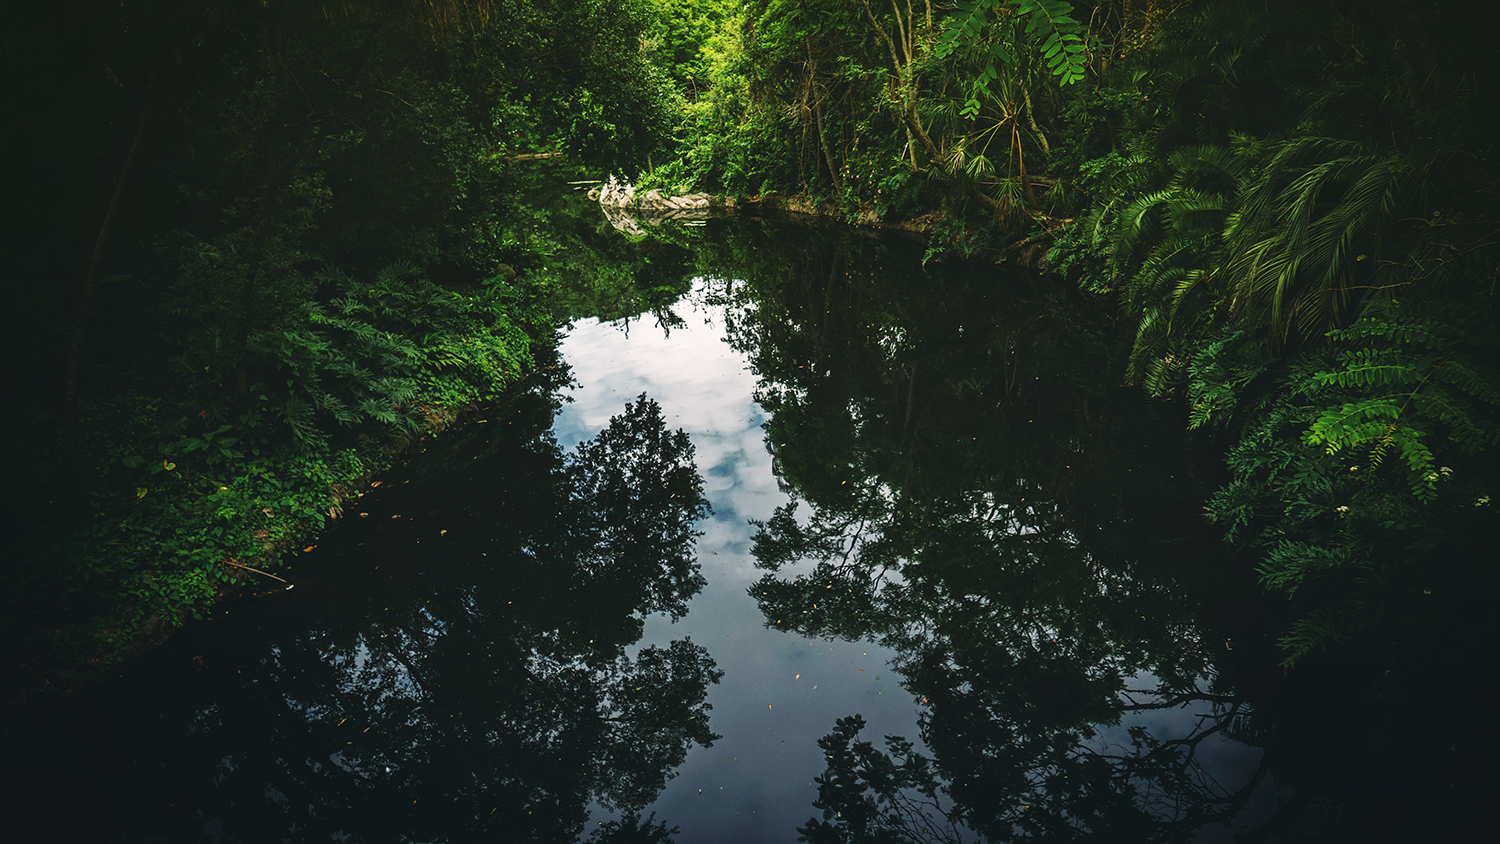 Jungle reflection in river